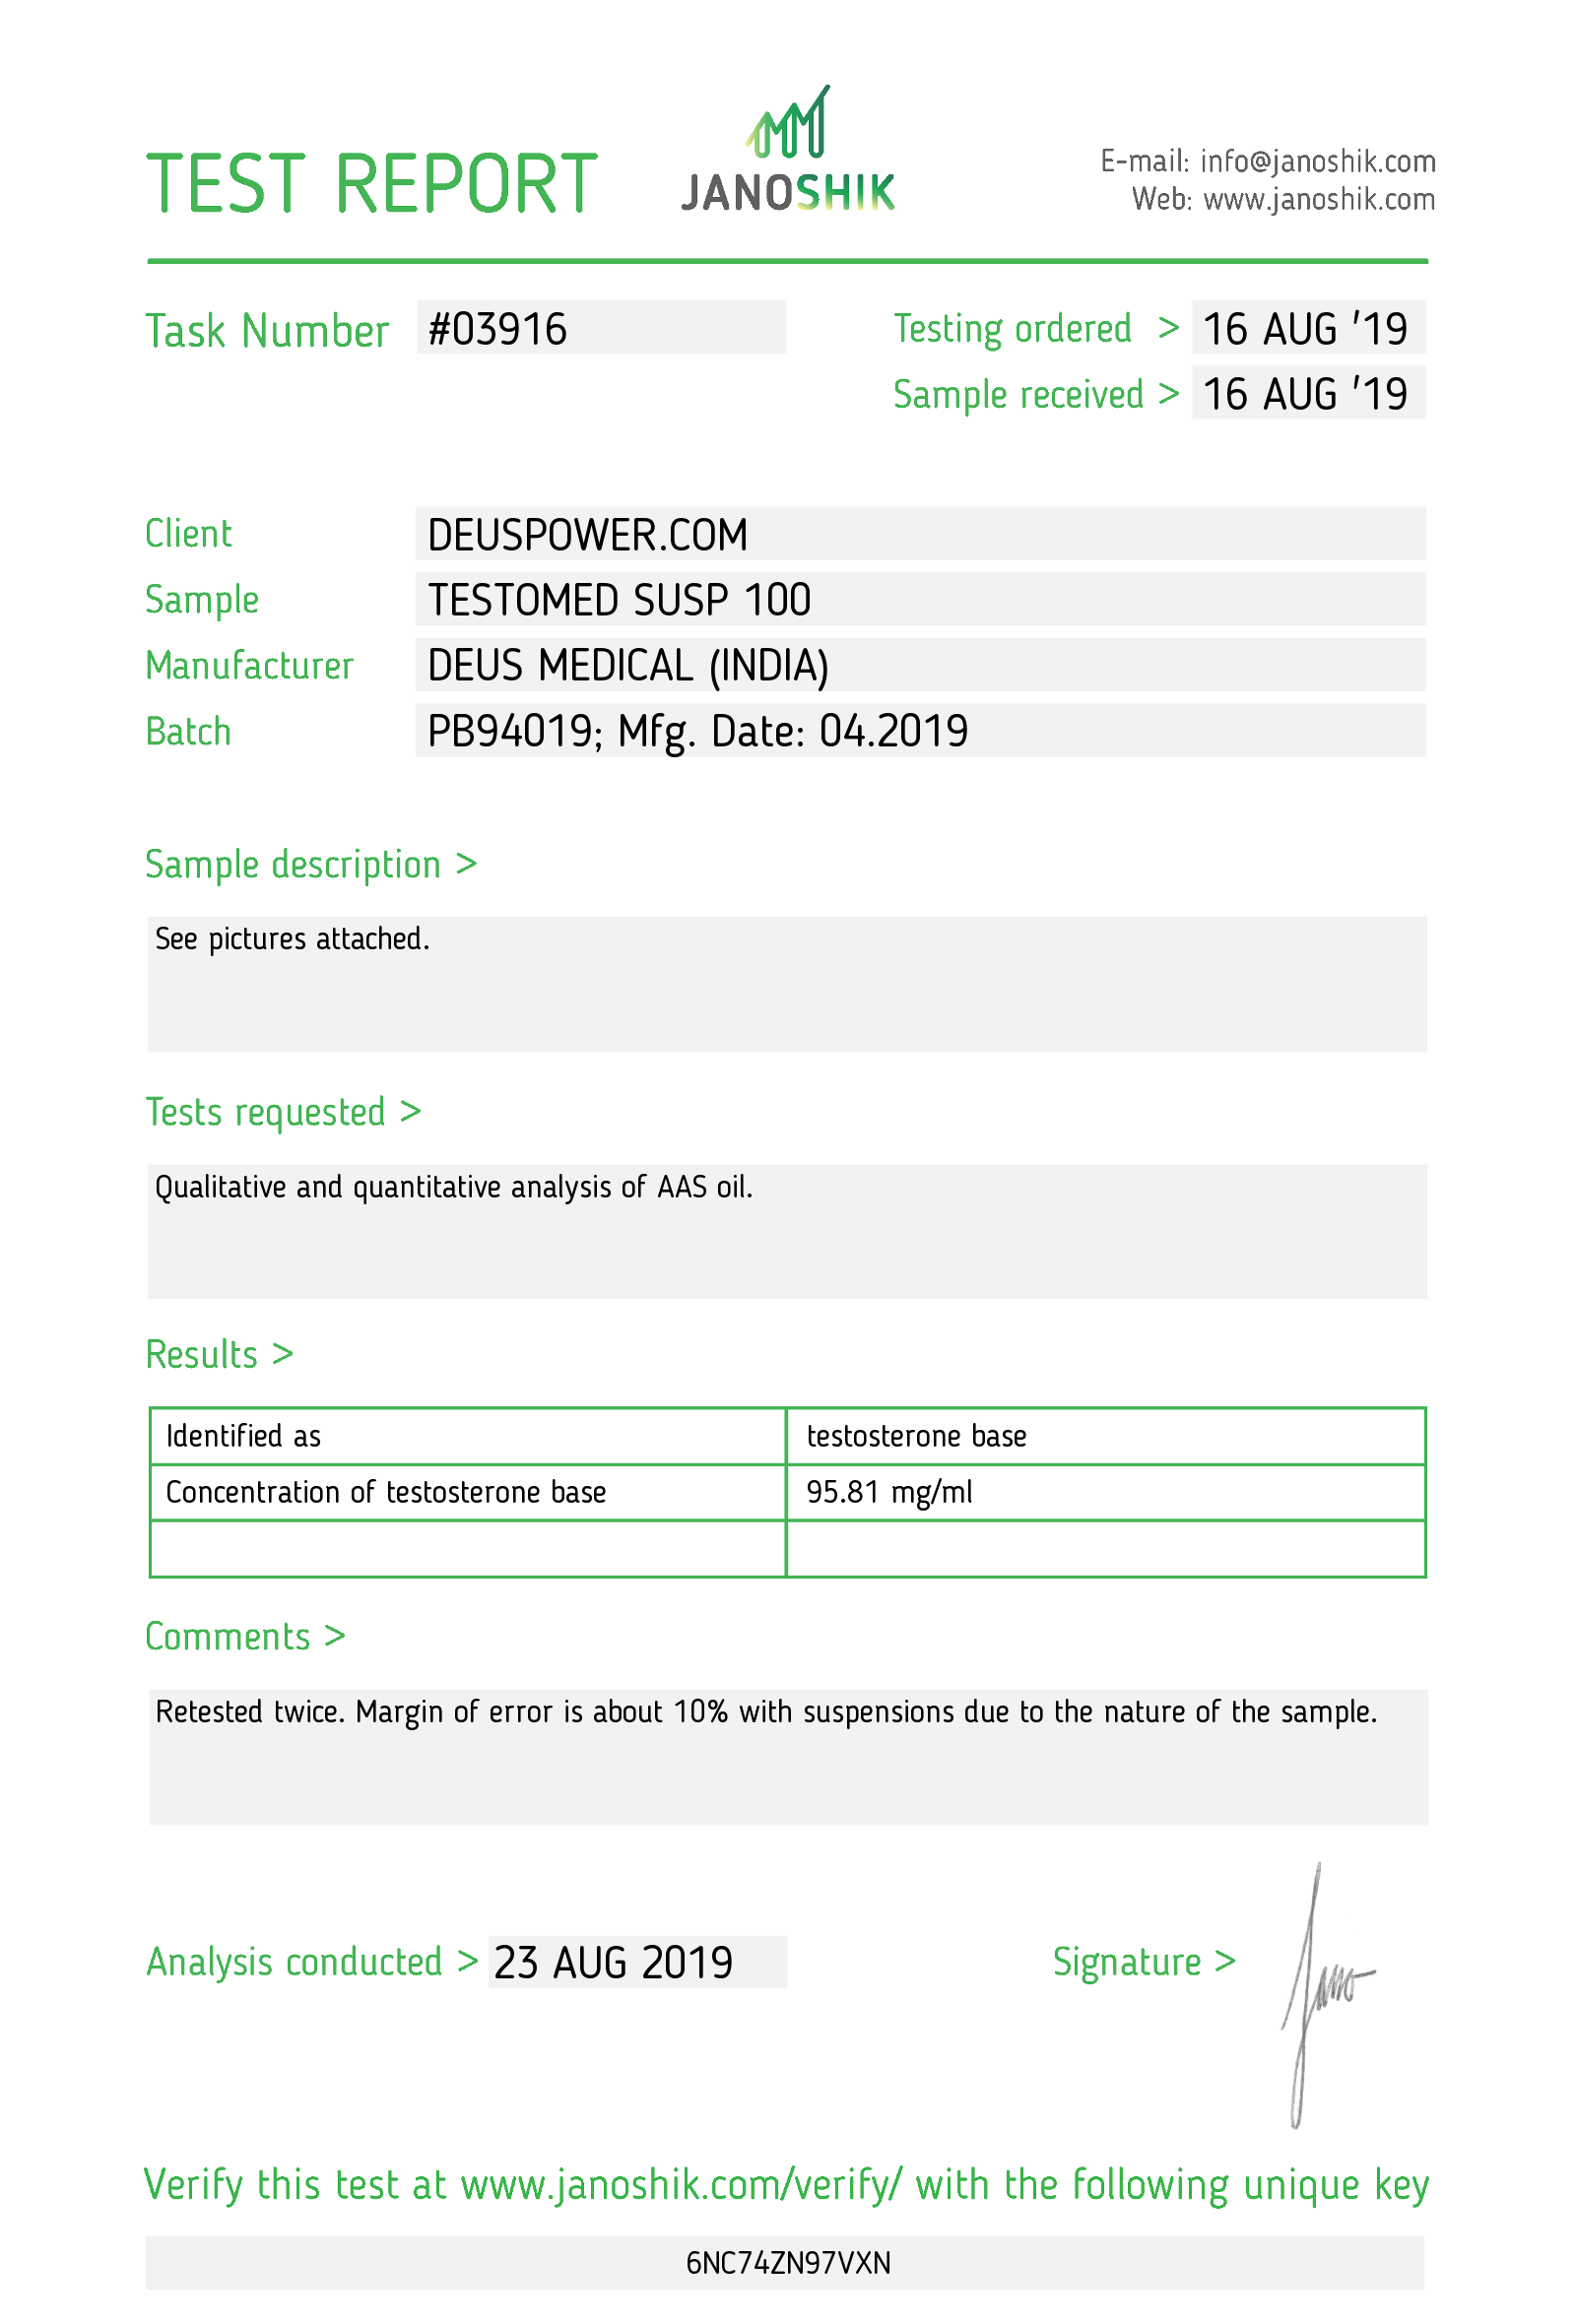 Laboratory Test for Deus Medical TESTOMED SUSP 100_Test Report.png